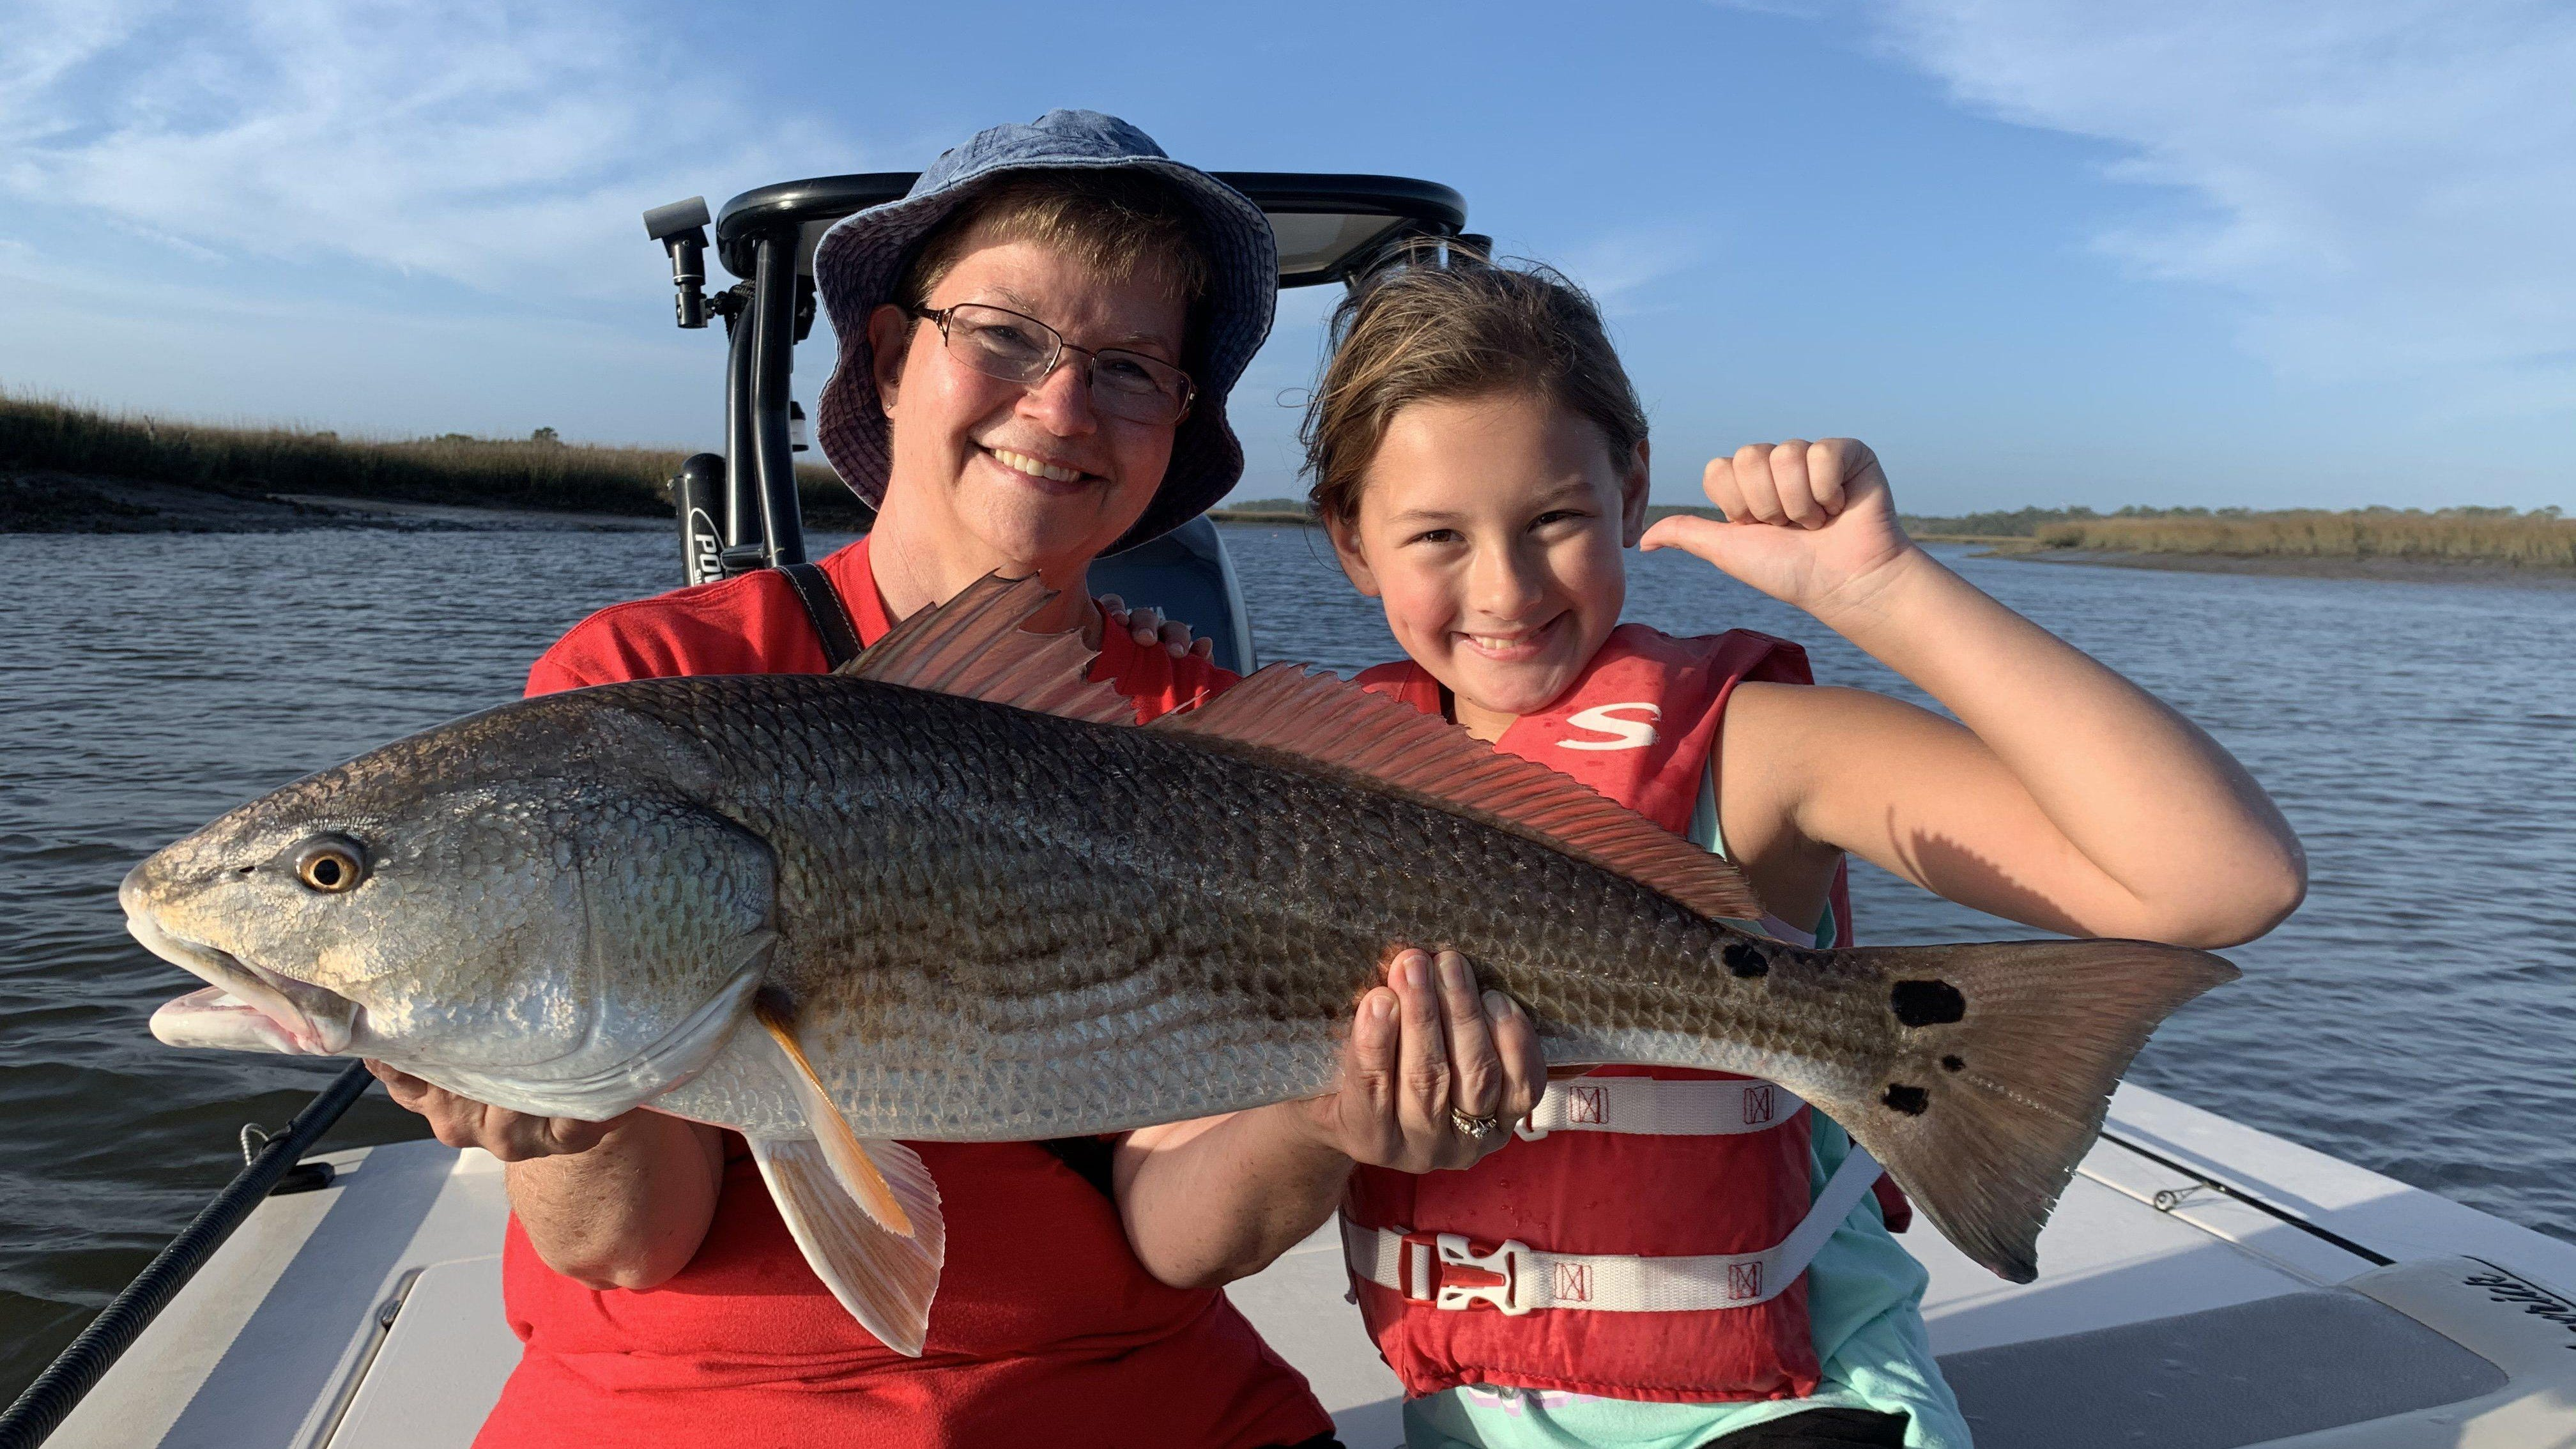 Jacksonville Fishing Report is back, and you will be, too, when weather  improves this weekend